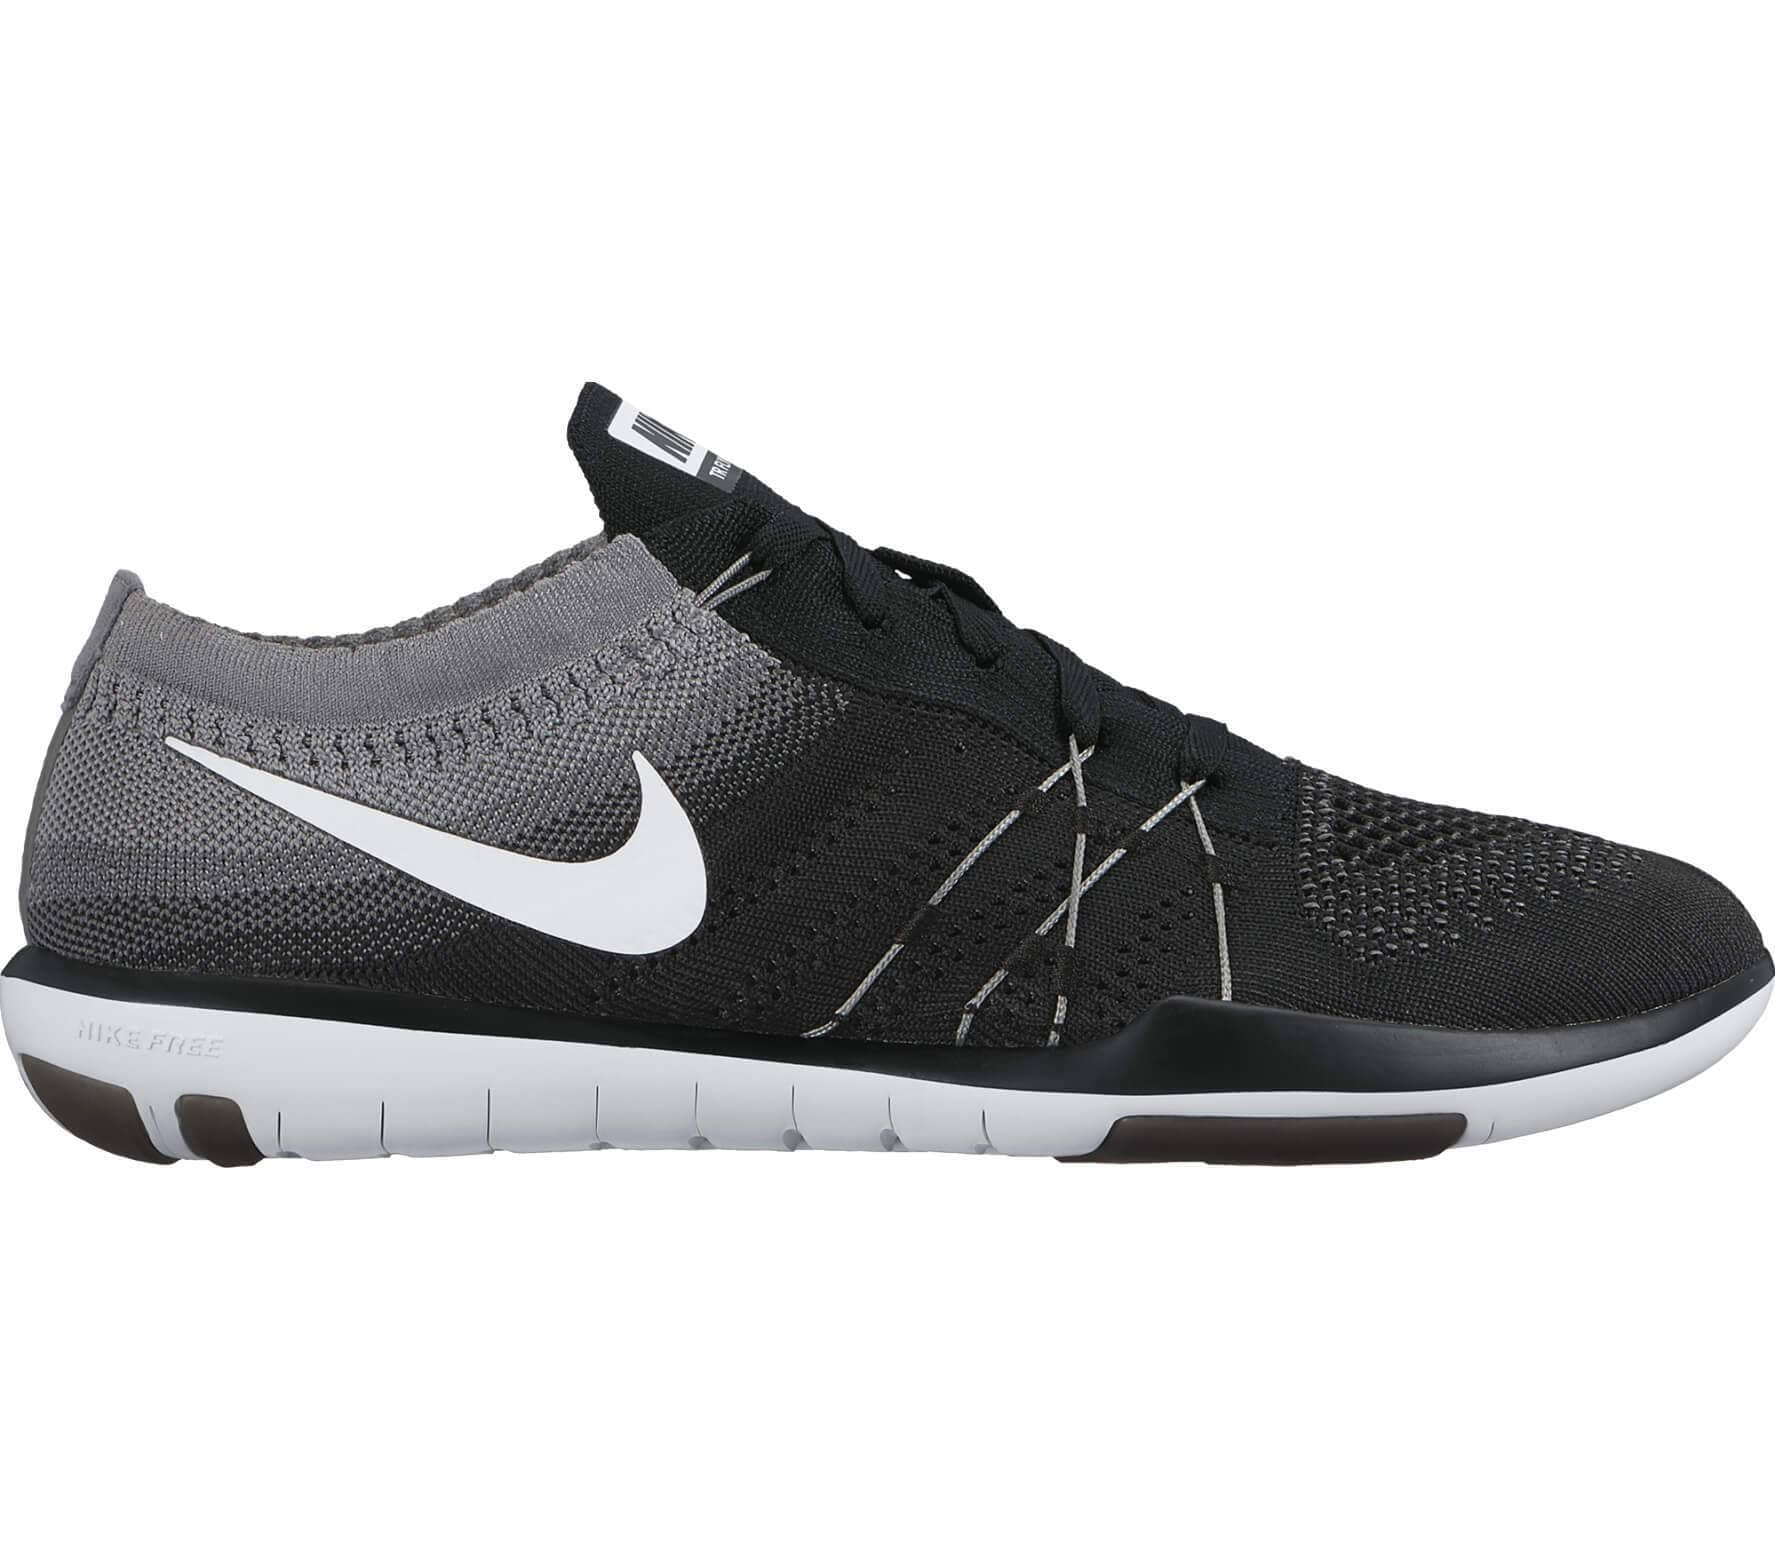 finest selection c75a1 a5846 Nike - Free Focus Flyknit women s training shoes (black grey)